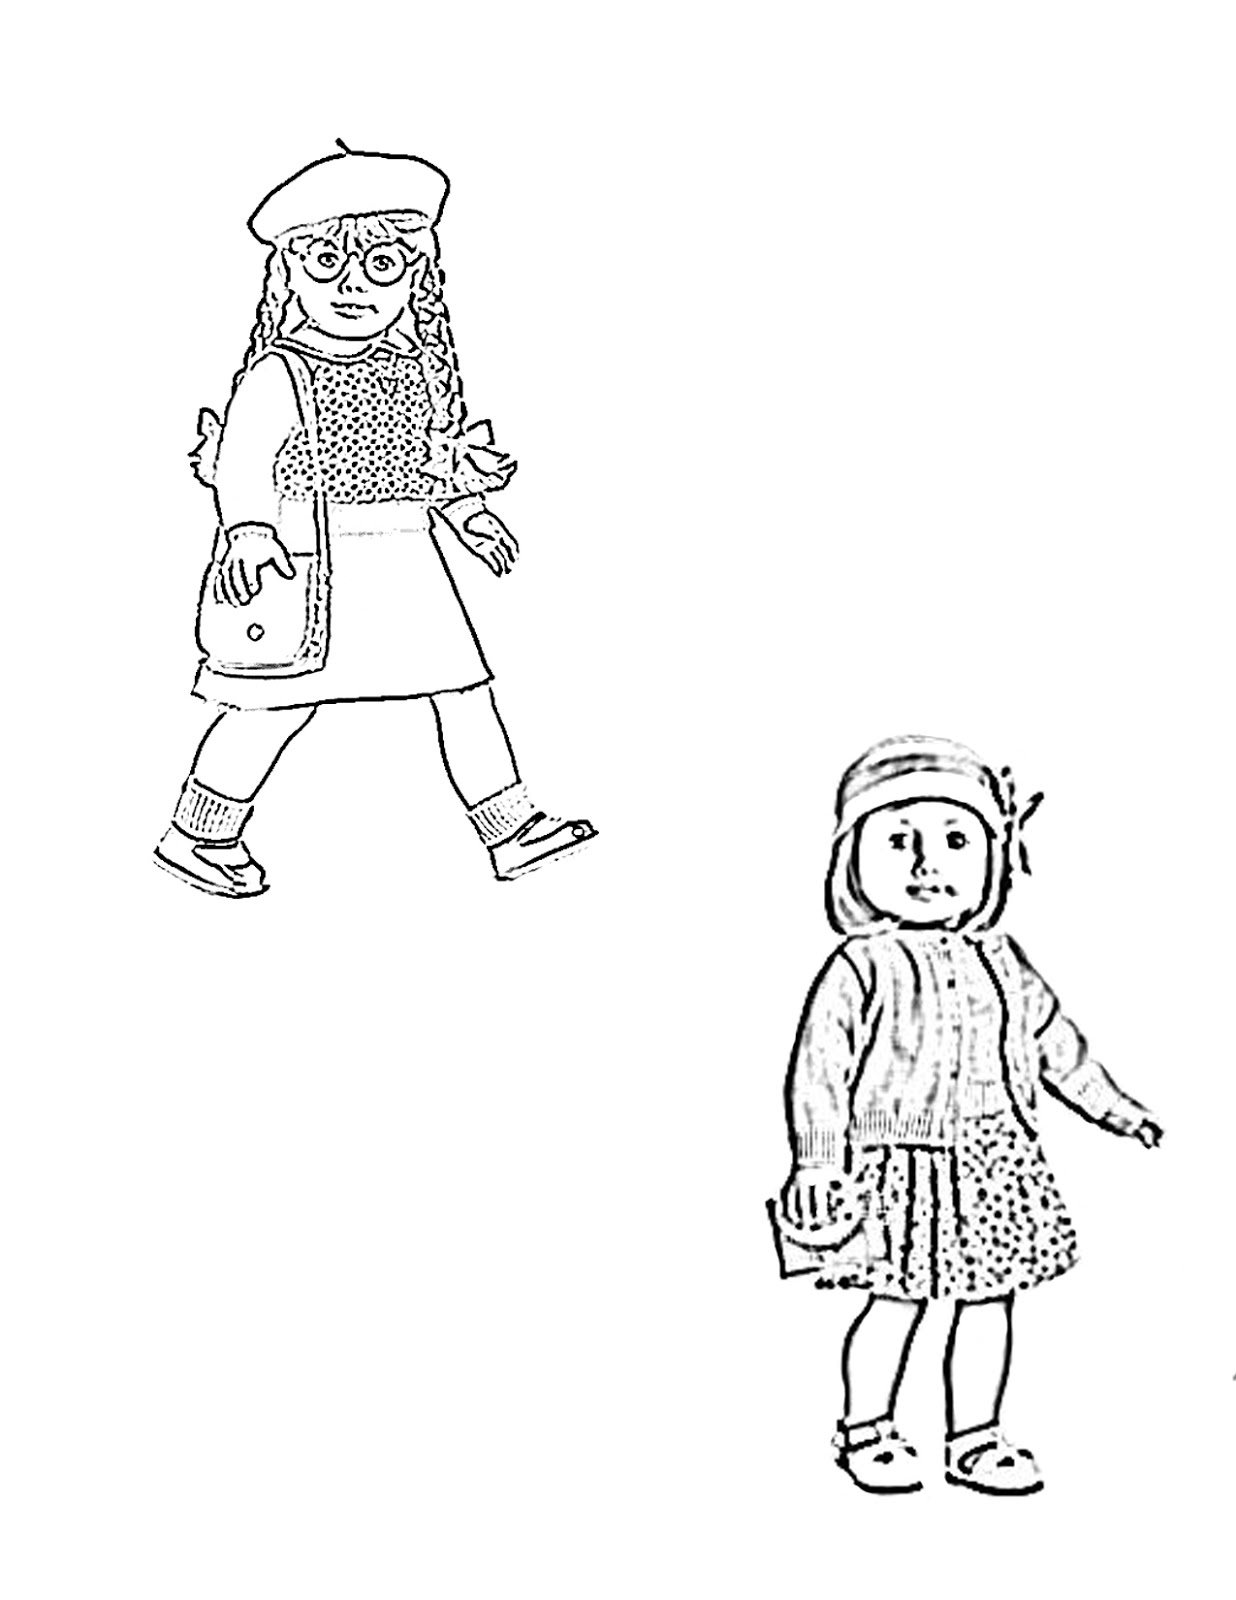 free printable american girl doll coloring pages american girl doll coloring pages to download and print girl american printable coloring pages free doll